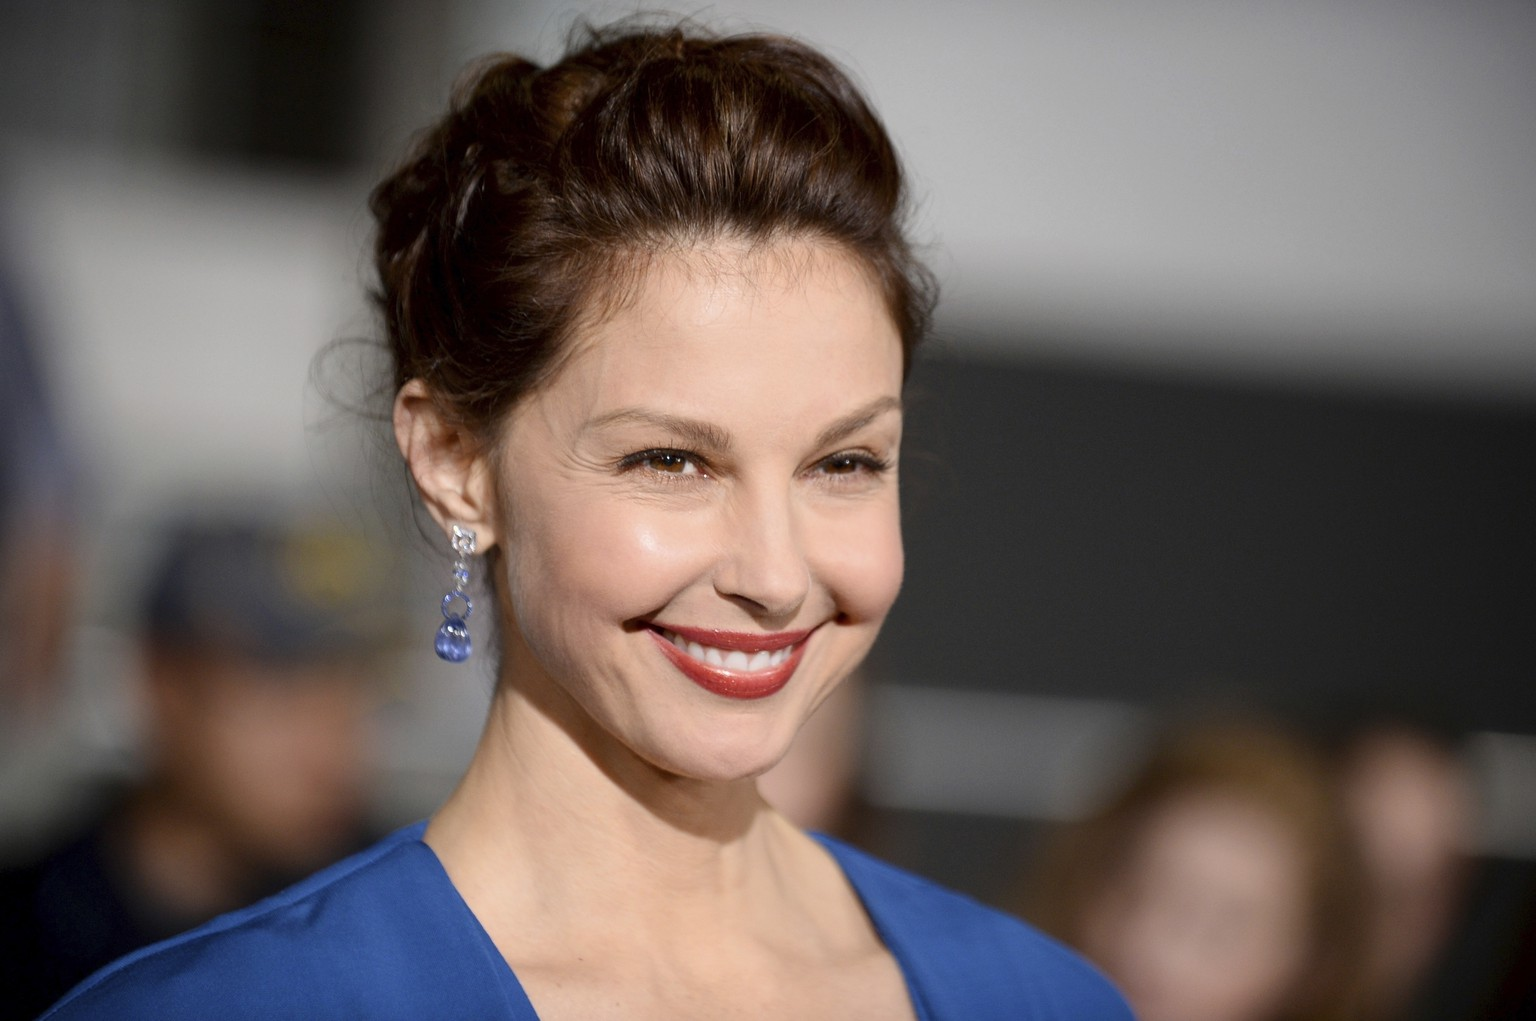 FILE - In this March 18, 2014, file photo, Ashley Judd arrives at the world premiere of